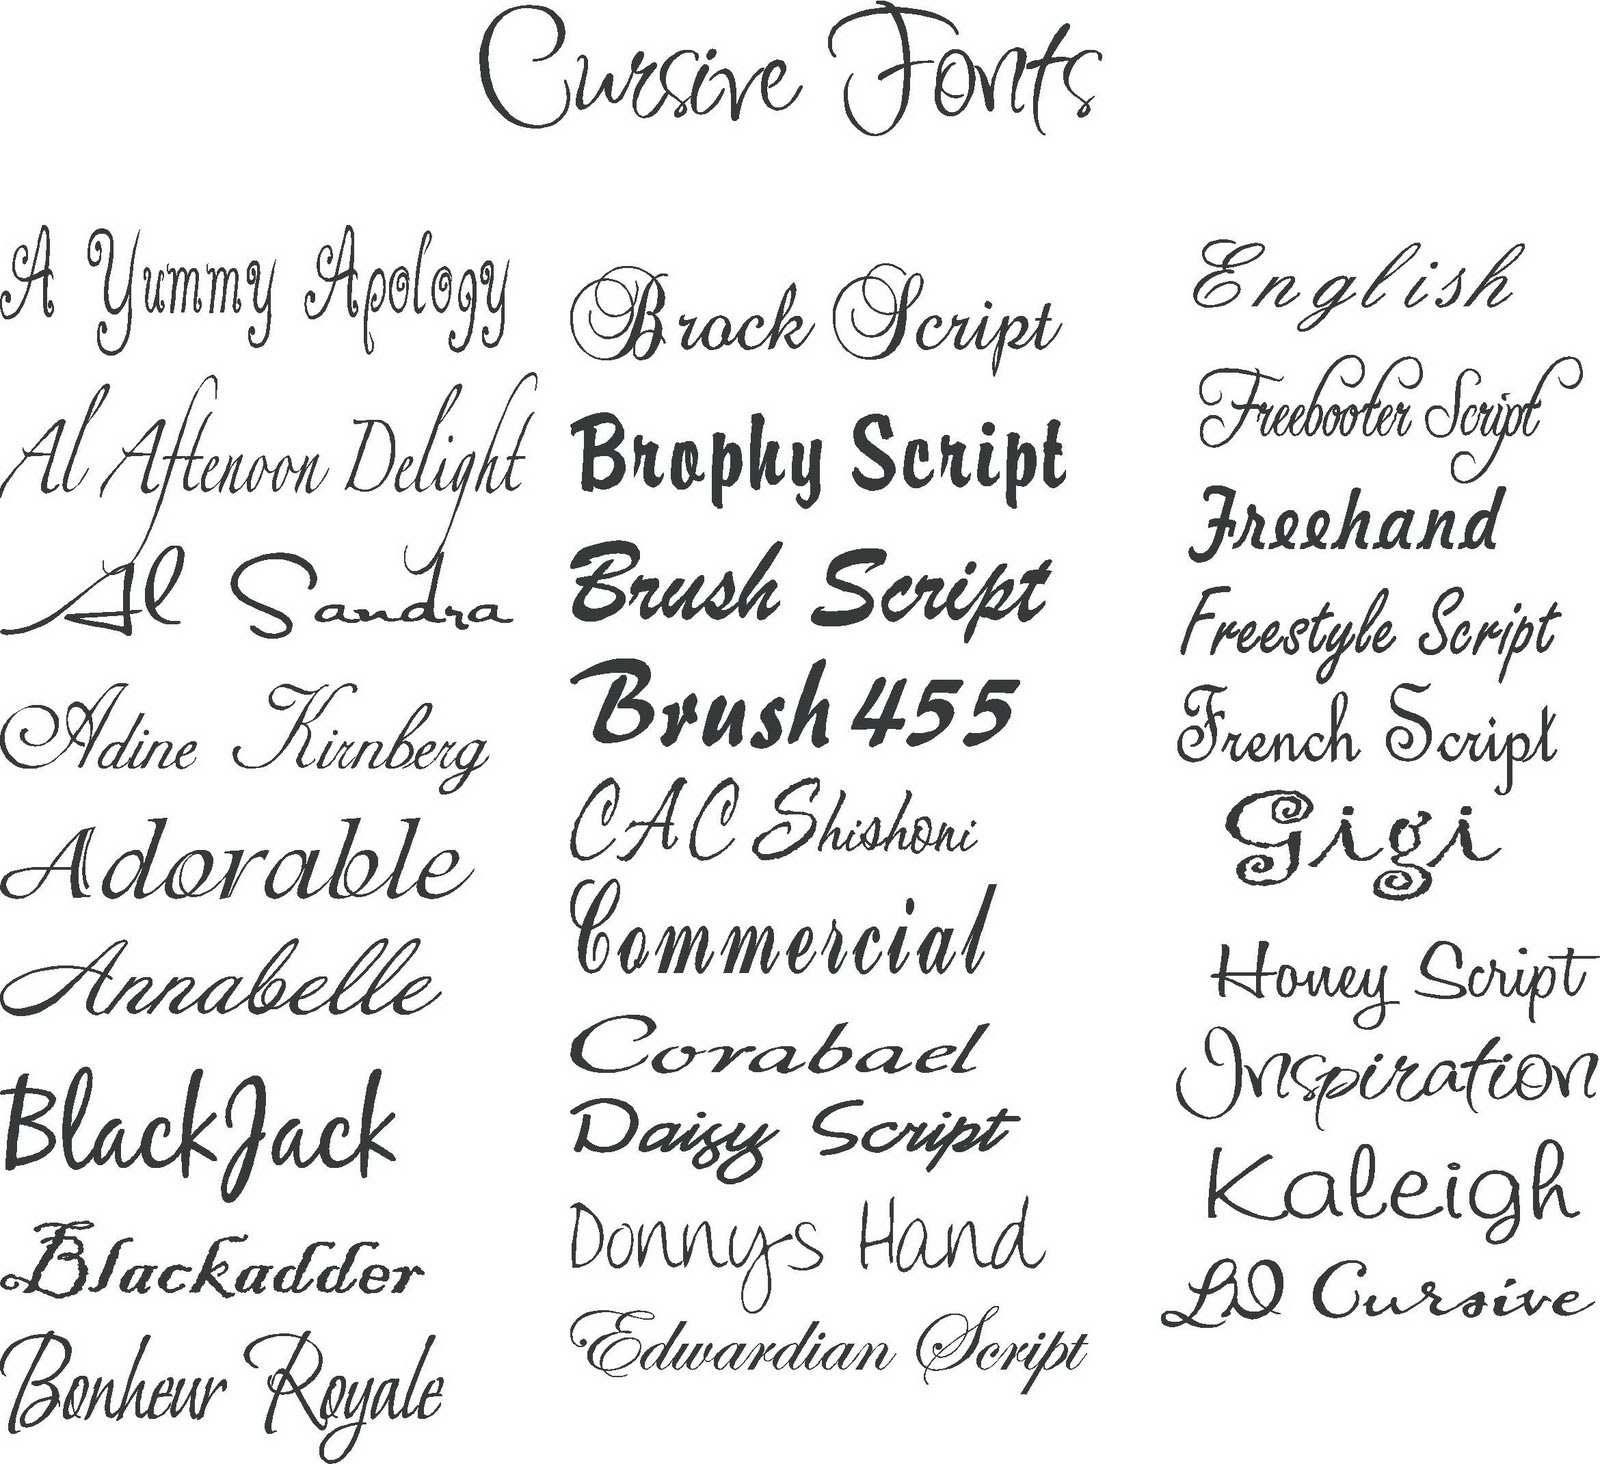 5 Cursive Writing Fonts Images